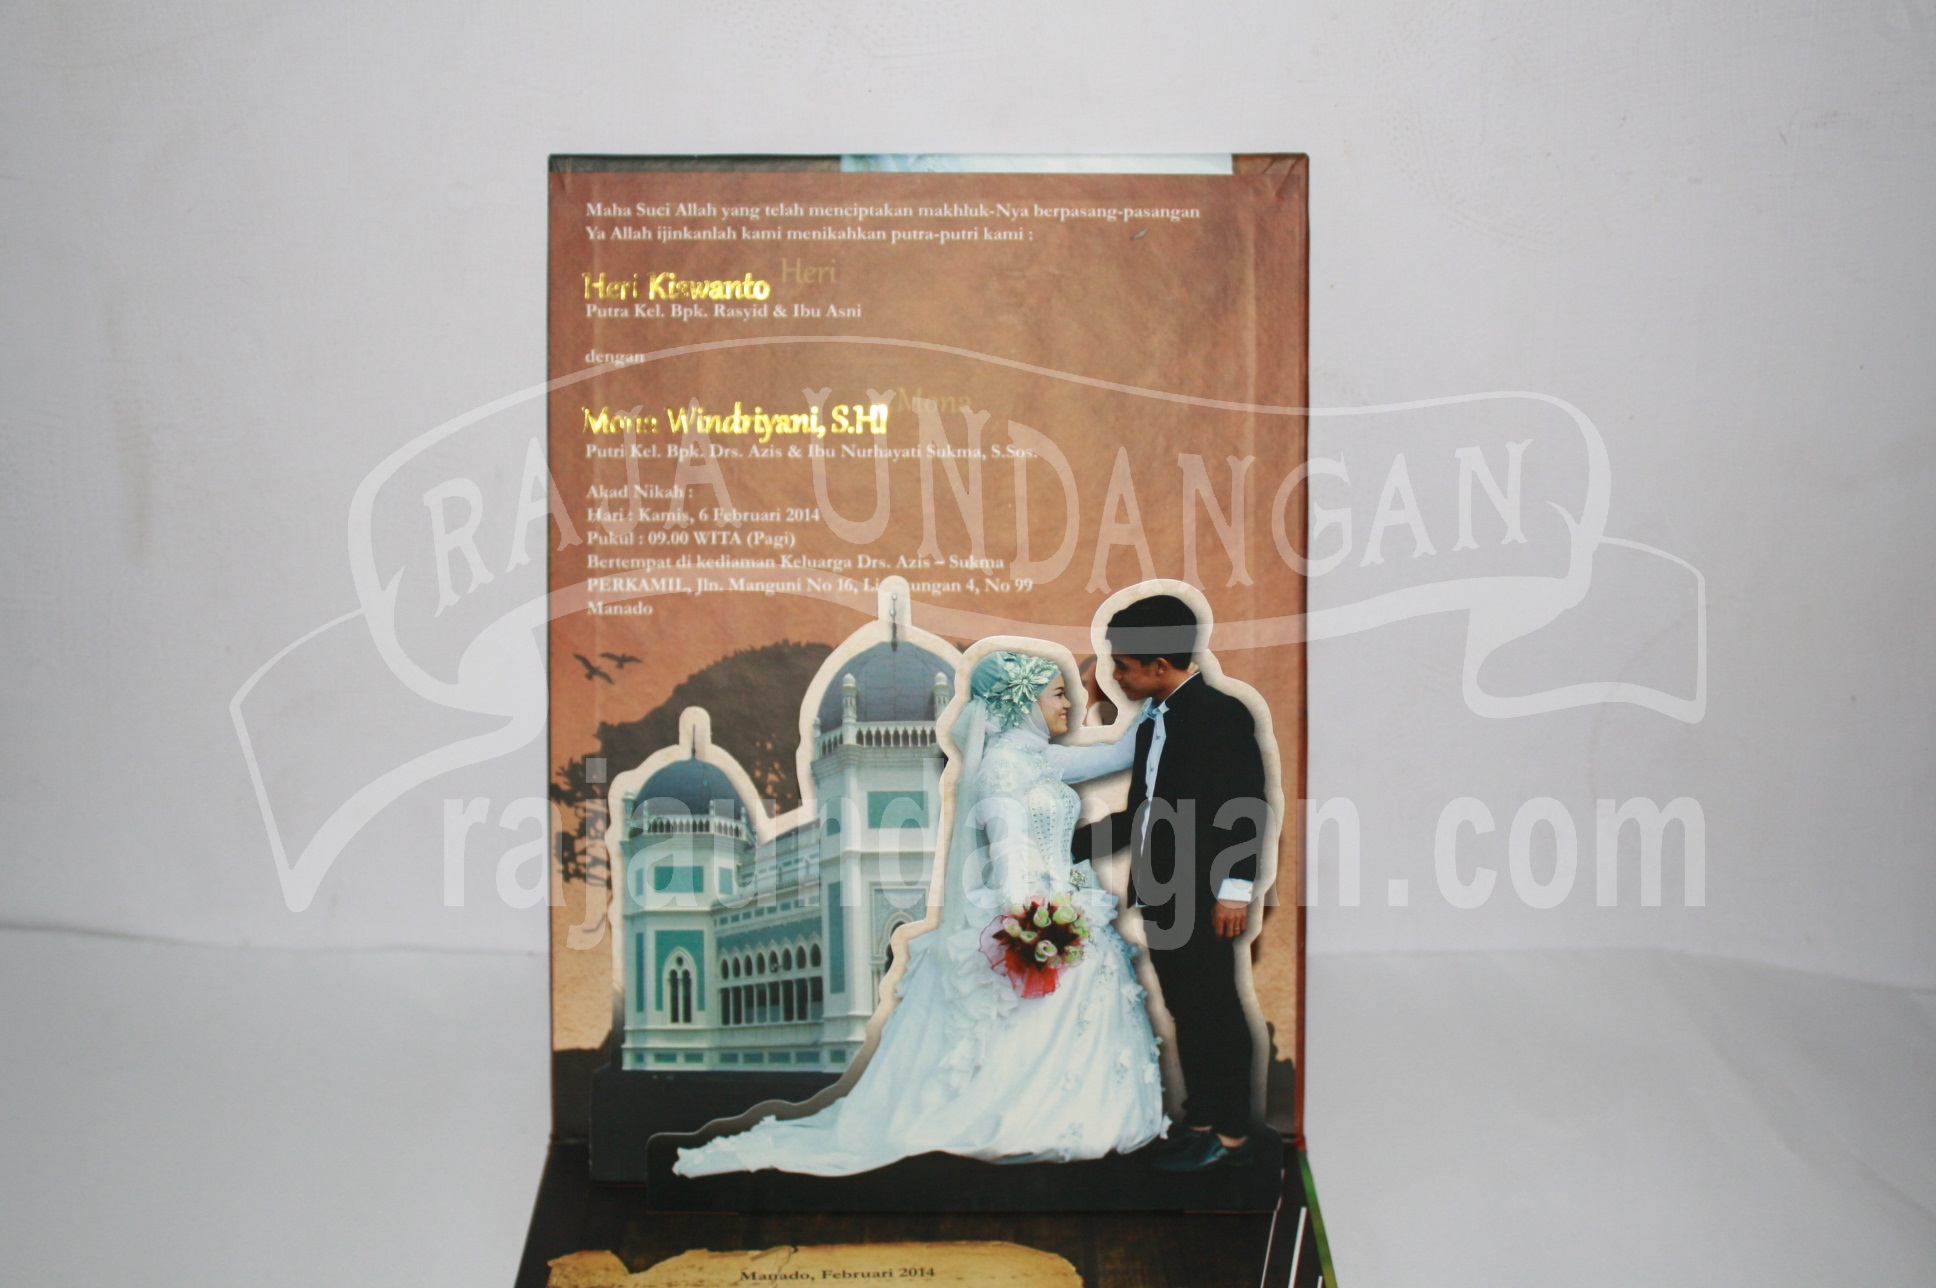 Undangan Pernikahan Hardcover Pop Up Heri dan Mona EDC 43 2 - Percetakan Wedding Invitations Murah di Kapasan